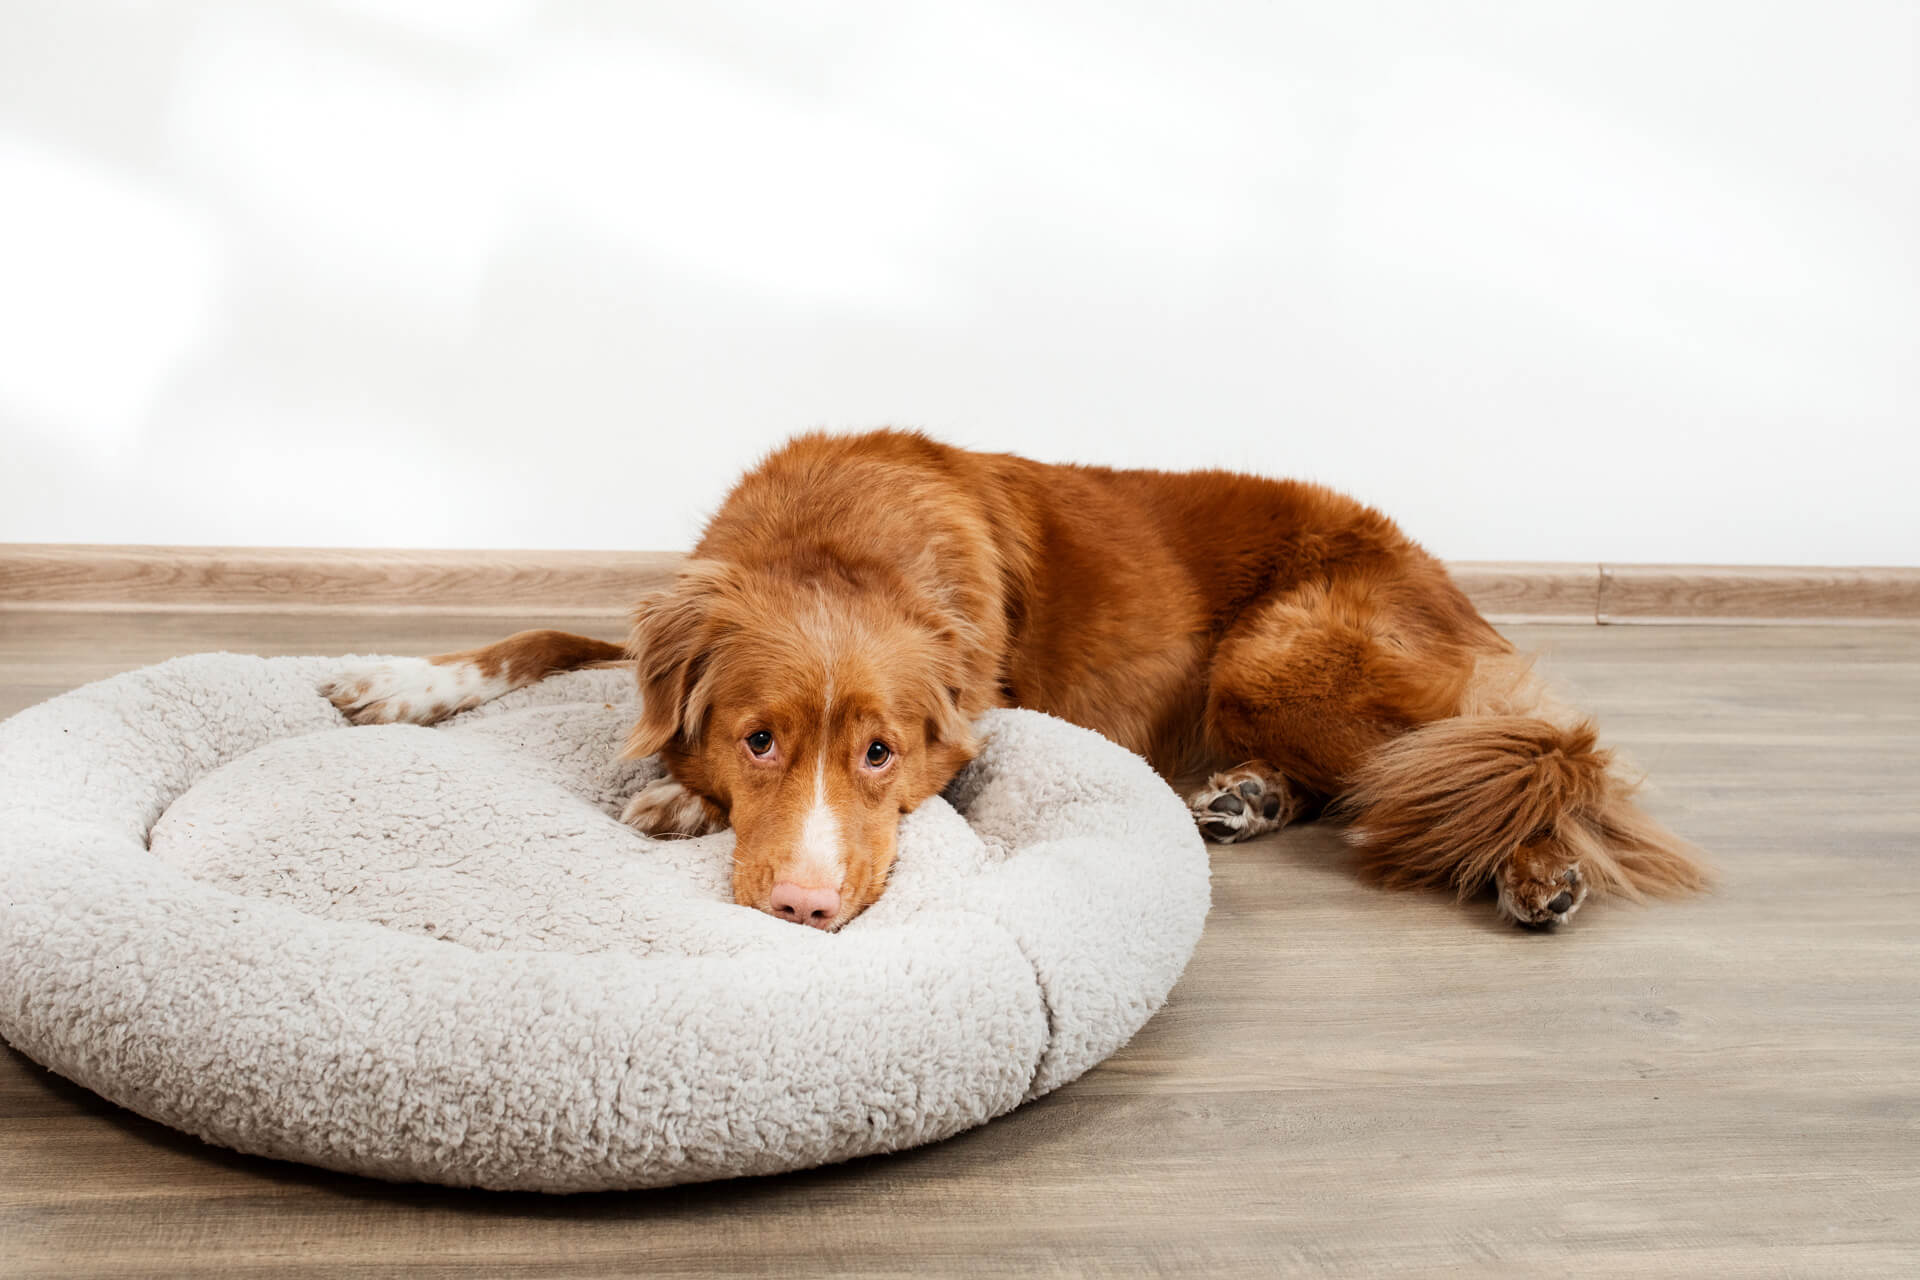 Dog Diarrhea: Top Causes and Treatments